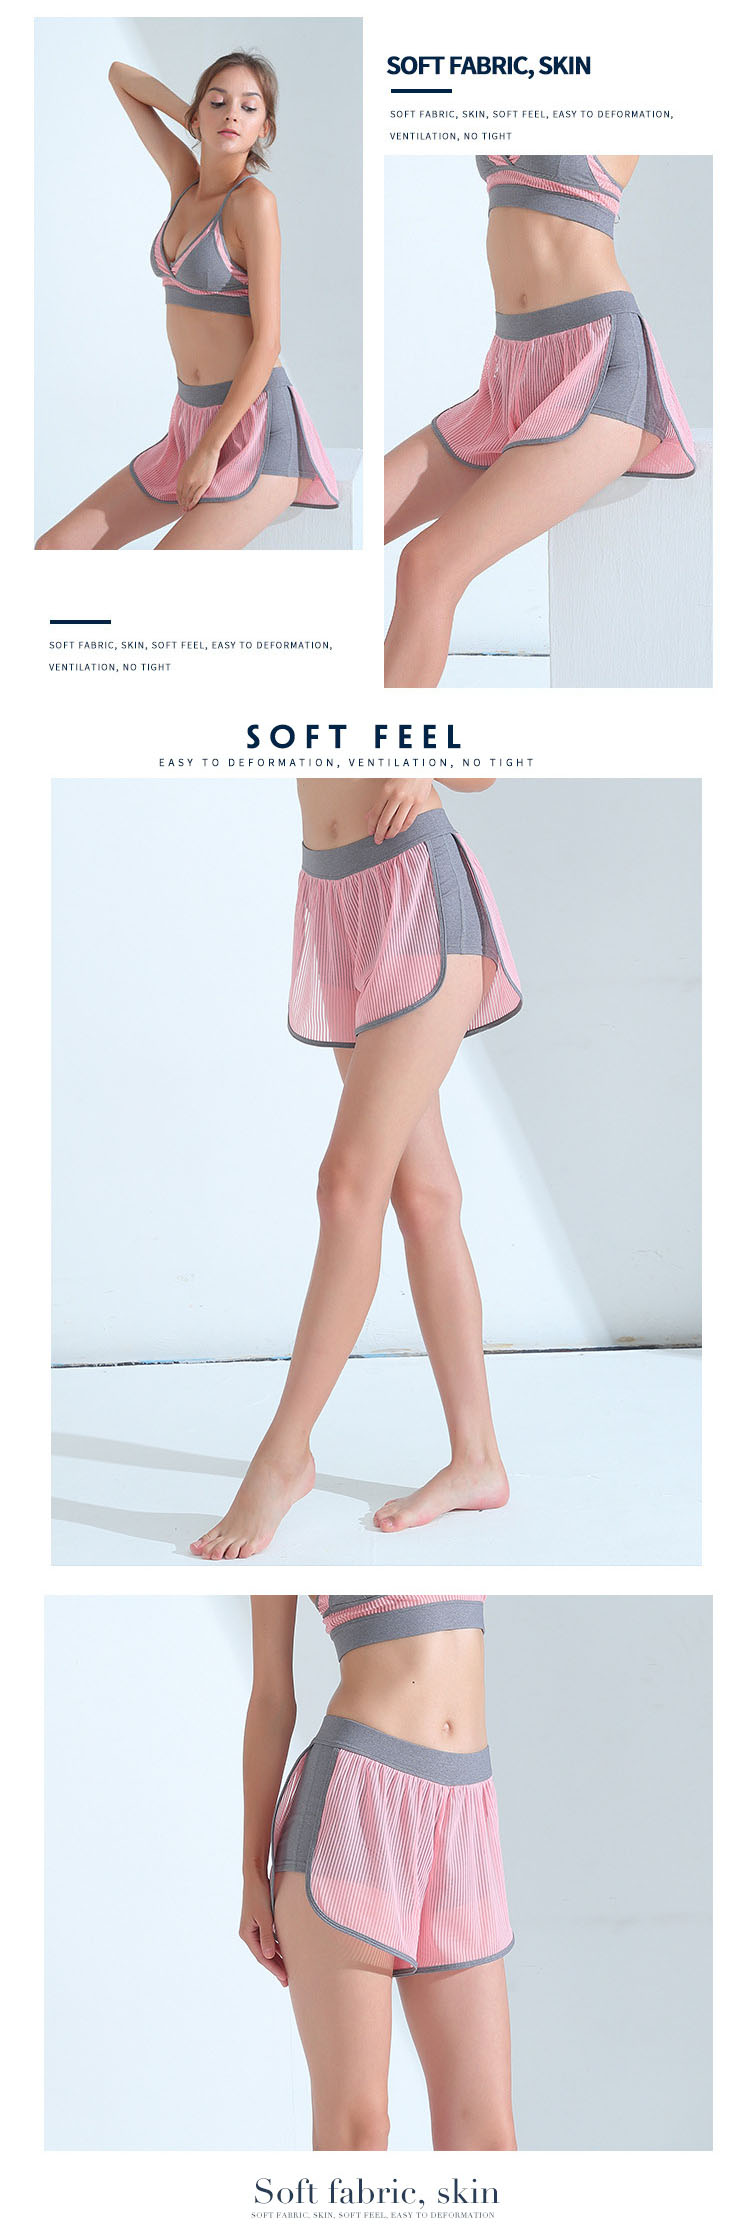 Tightly wrap the buttocks and thighs, safely protect the sports muscles, and fit comfortably.